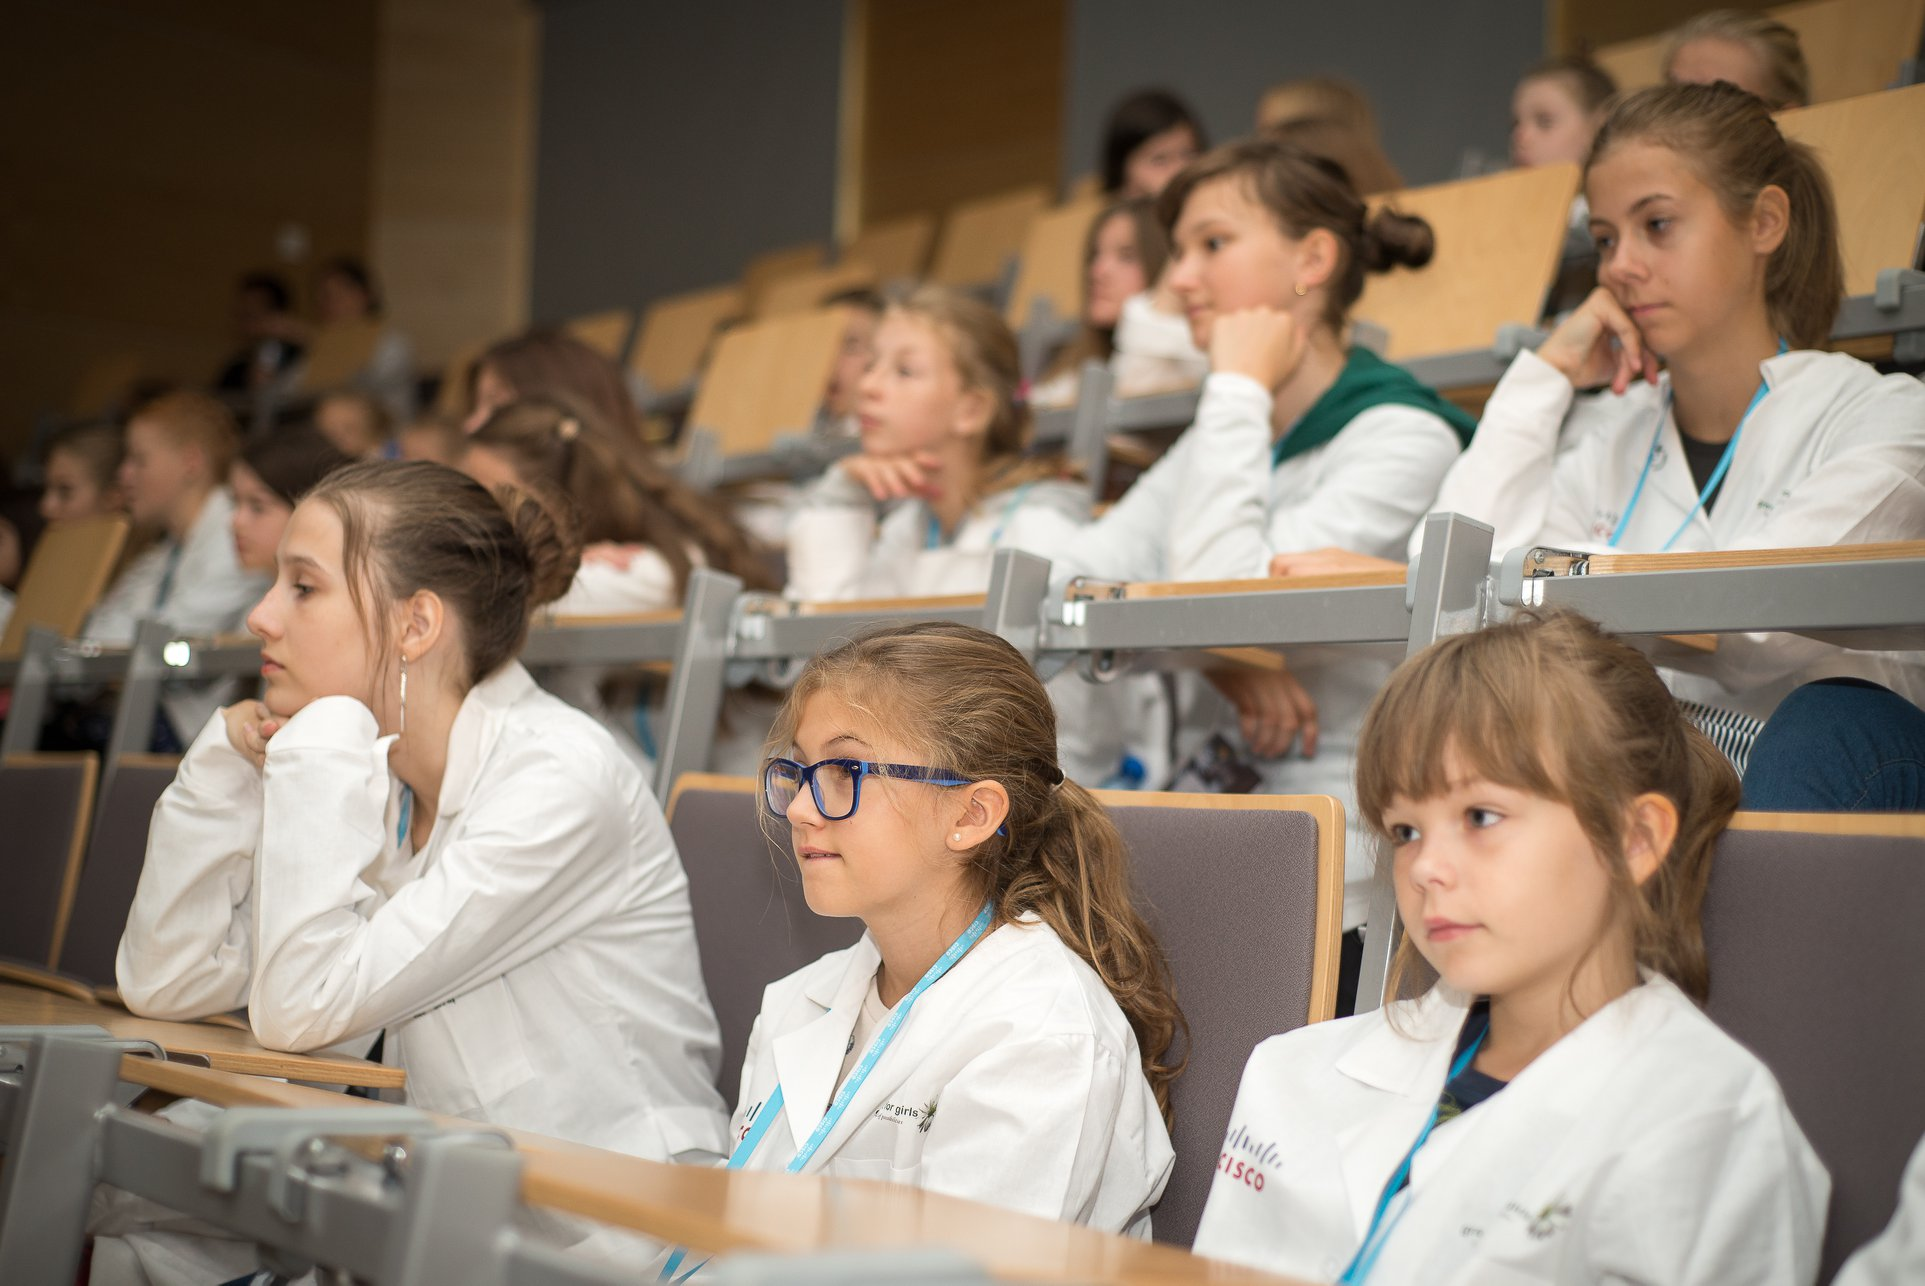 g4g Day @Krakow - Sept. 2018    On Sept. 22 2018, we were thrilled to be back to Cisco in Krakow, Poland, for the 4th g4g Day @Krakow! Thanks to the amazing partners and sponsors, it's 16 workshops that the 165 girls could experience through the day! Full photos album to come very soon!